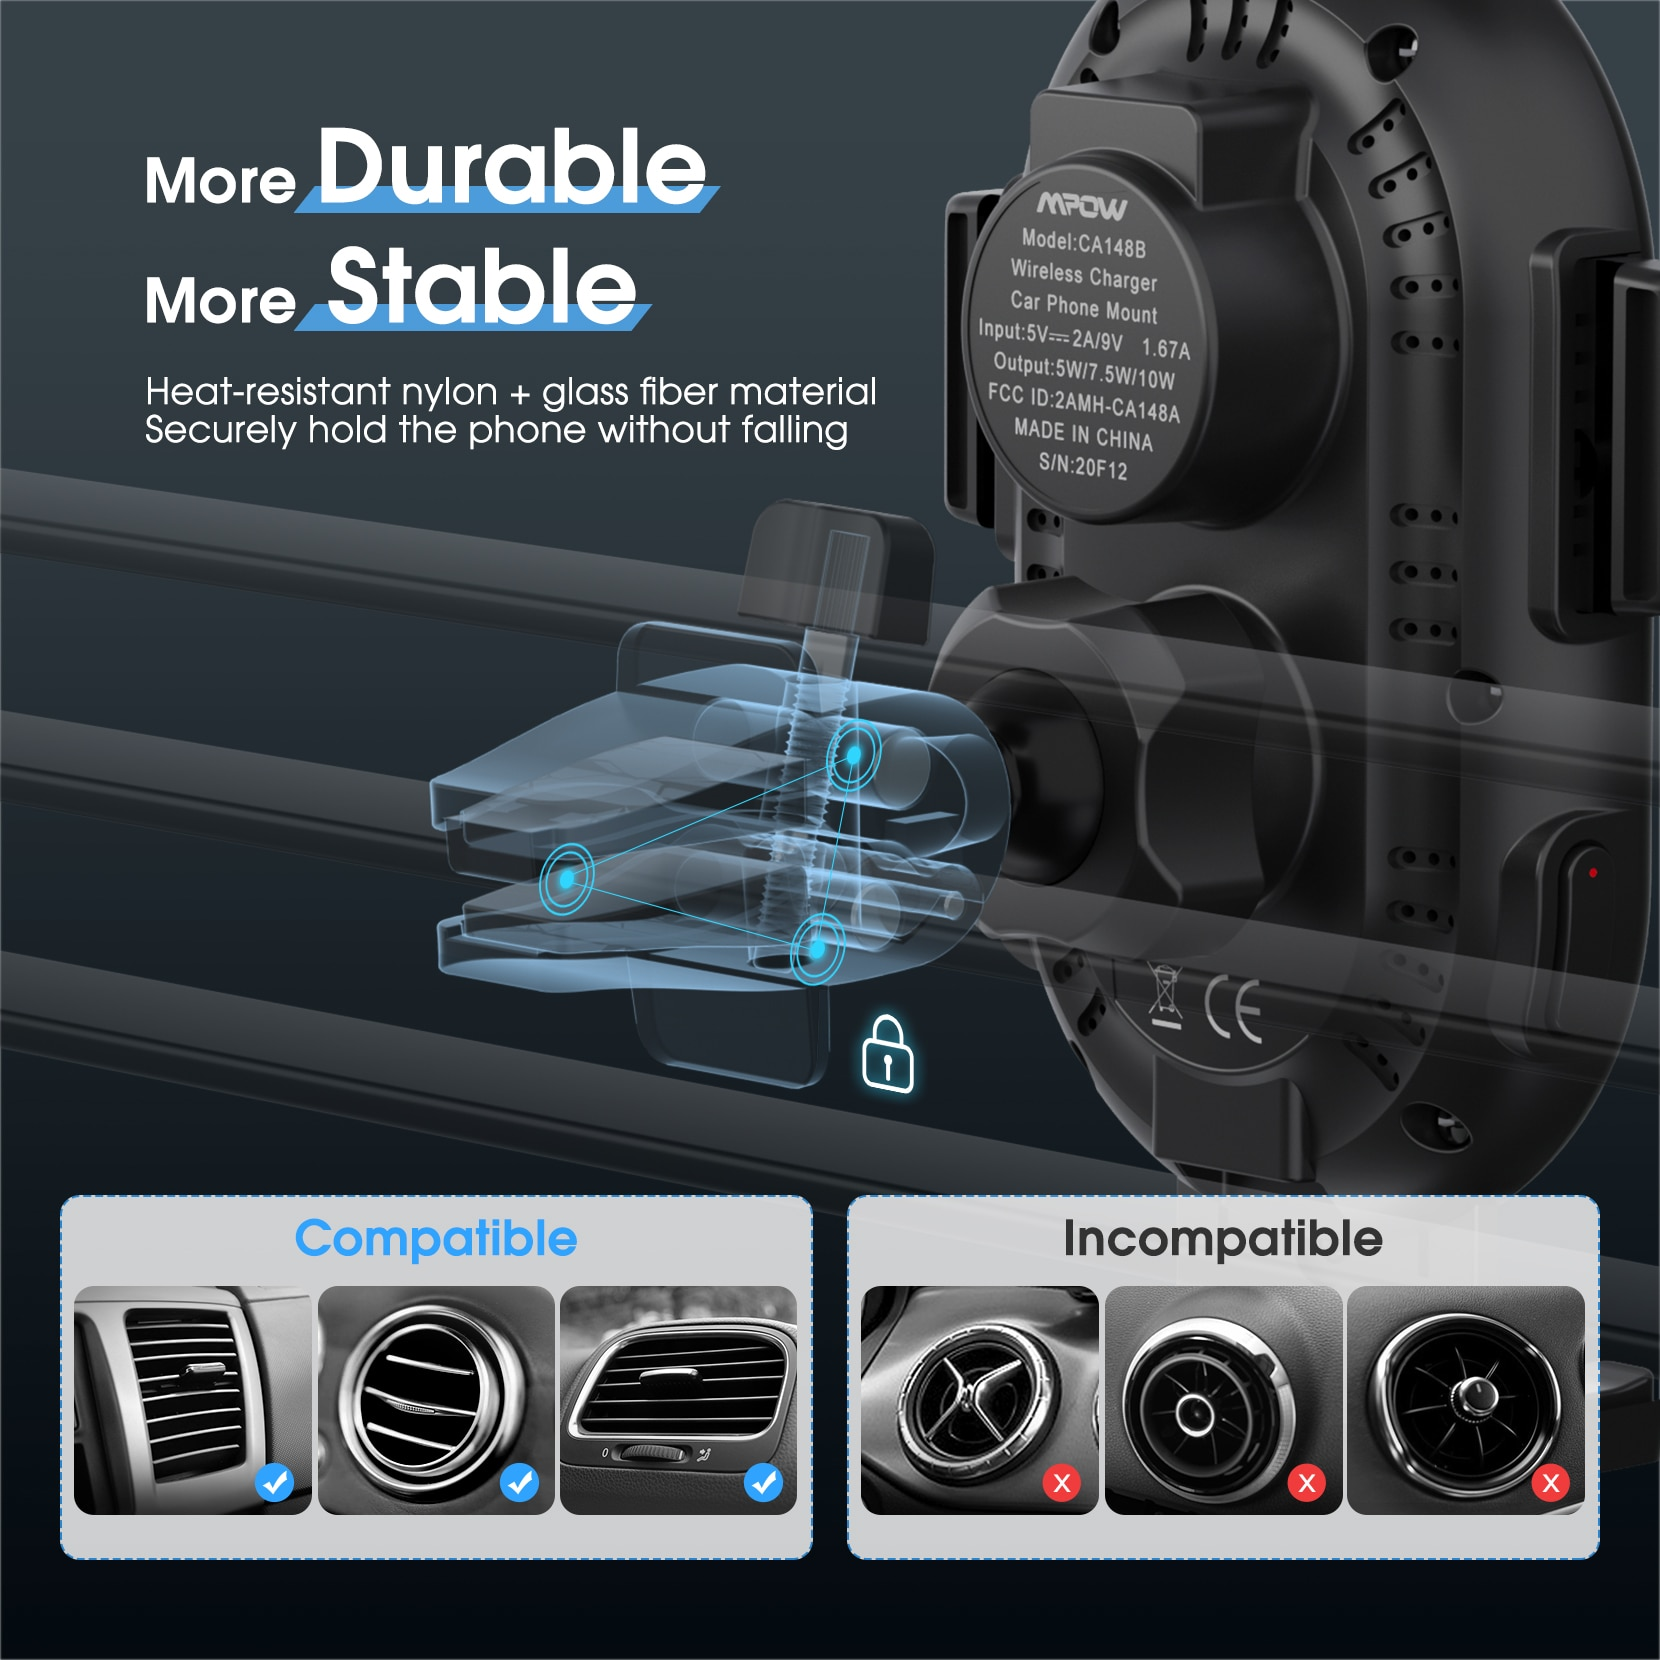 H60fd973cae7045389680b7f4450f03a83 - Mpow Wireless Car Charger Mount 10W Auto-clamping Qi Fast Charging Car Mount with Power Storage Car Phone Holder for iPhone 12